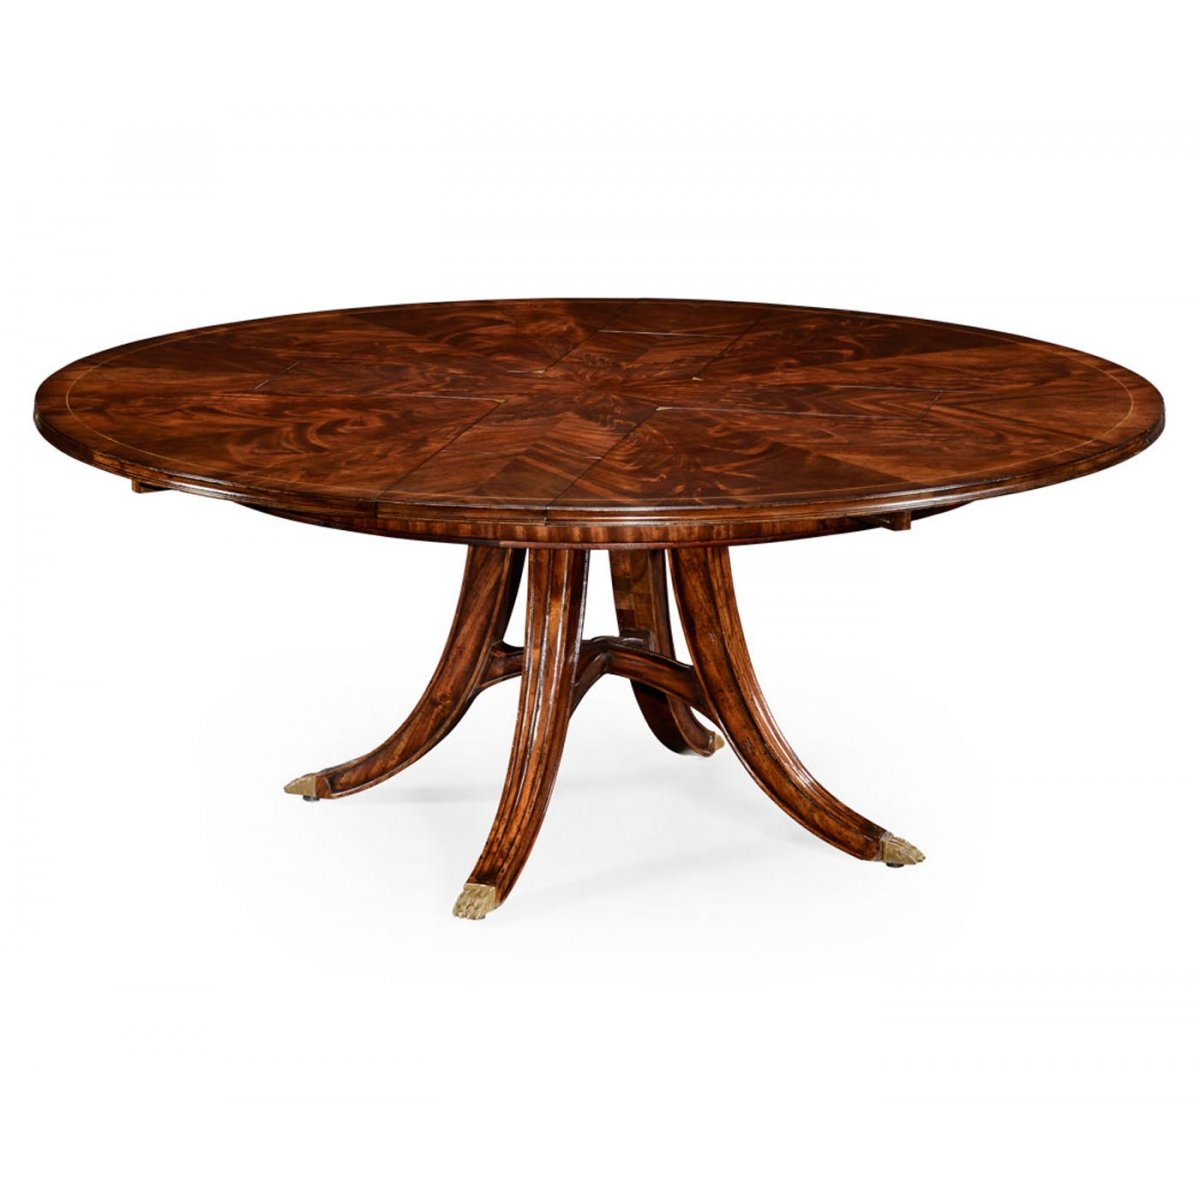 8 10 seater round extending dining table swanky interiors for 10 seater dining table